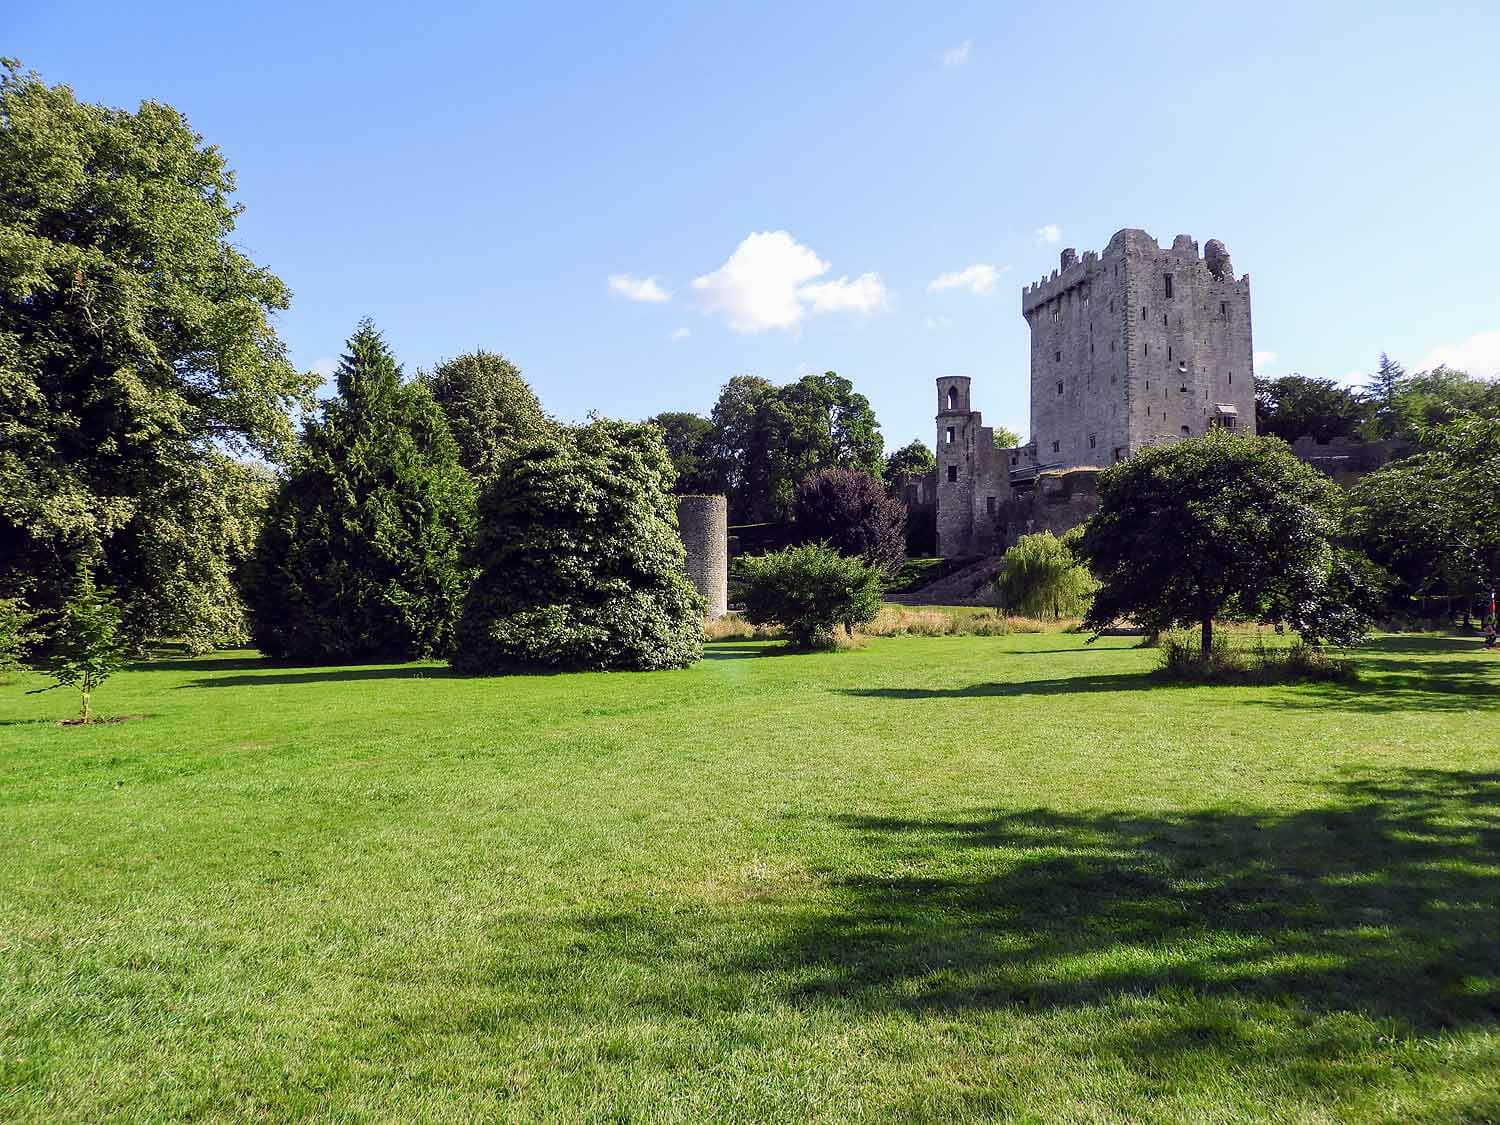 ireland-blarney-castle-ruins-tower.jpg